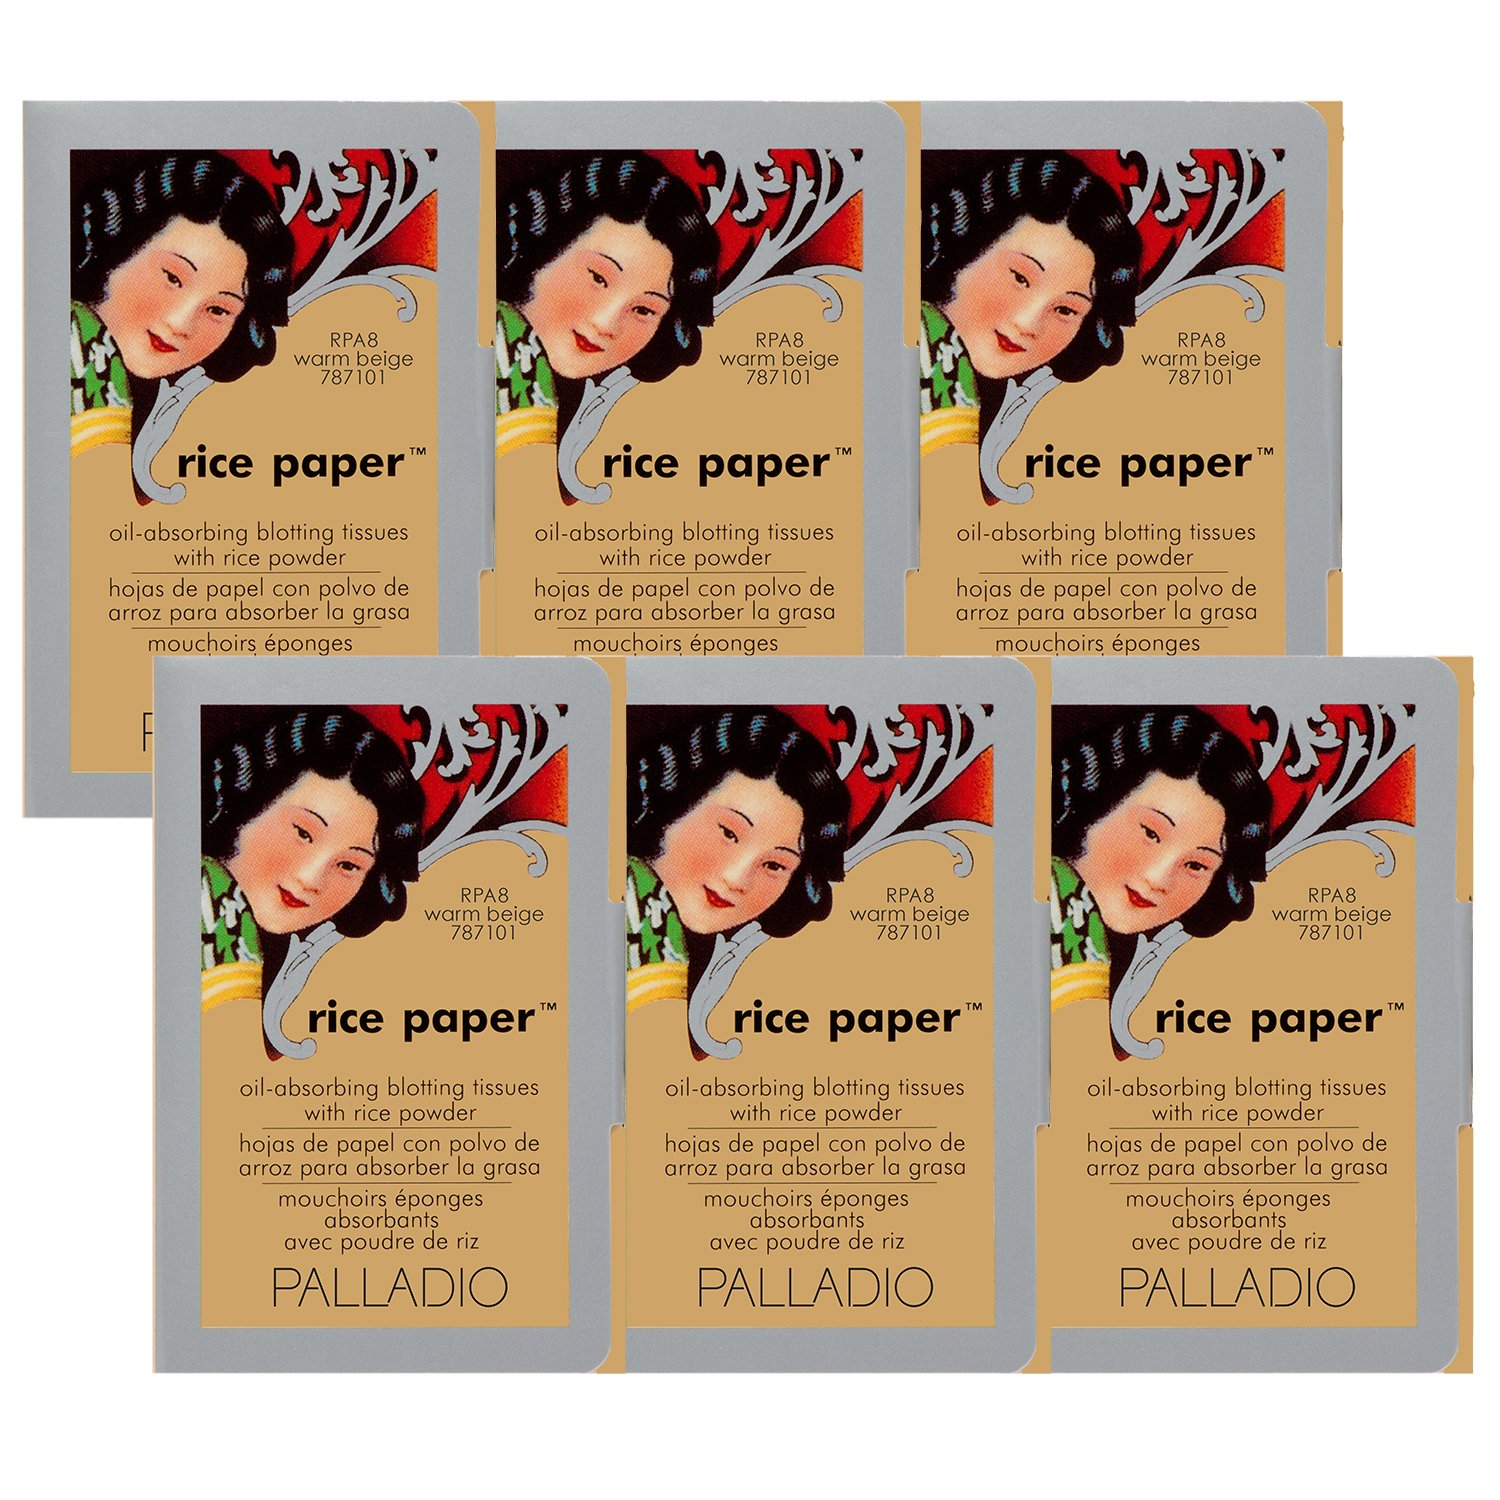 Amazon.com : Pack of 3 Palladio Rice Paper RPA8 Warm Beige